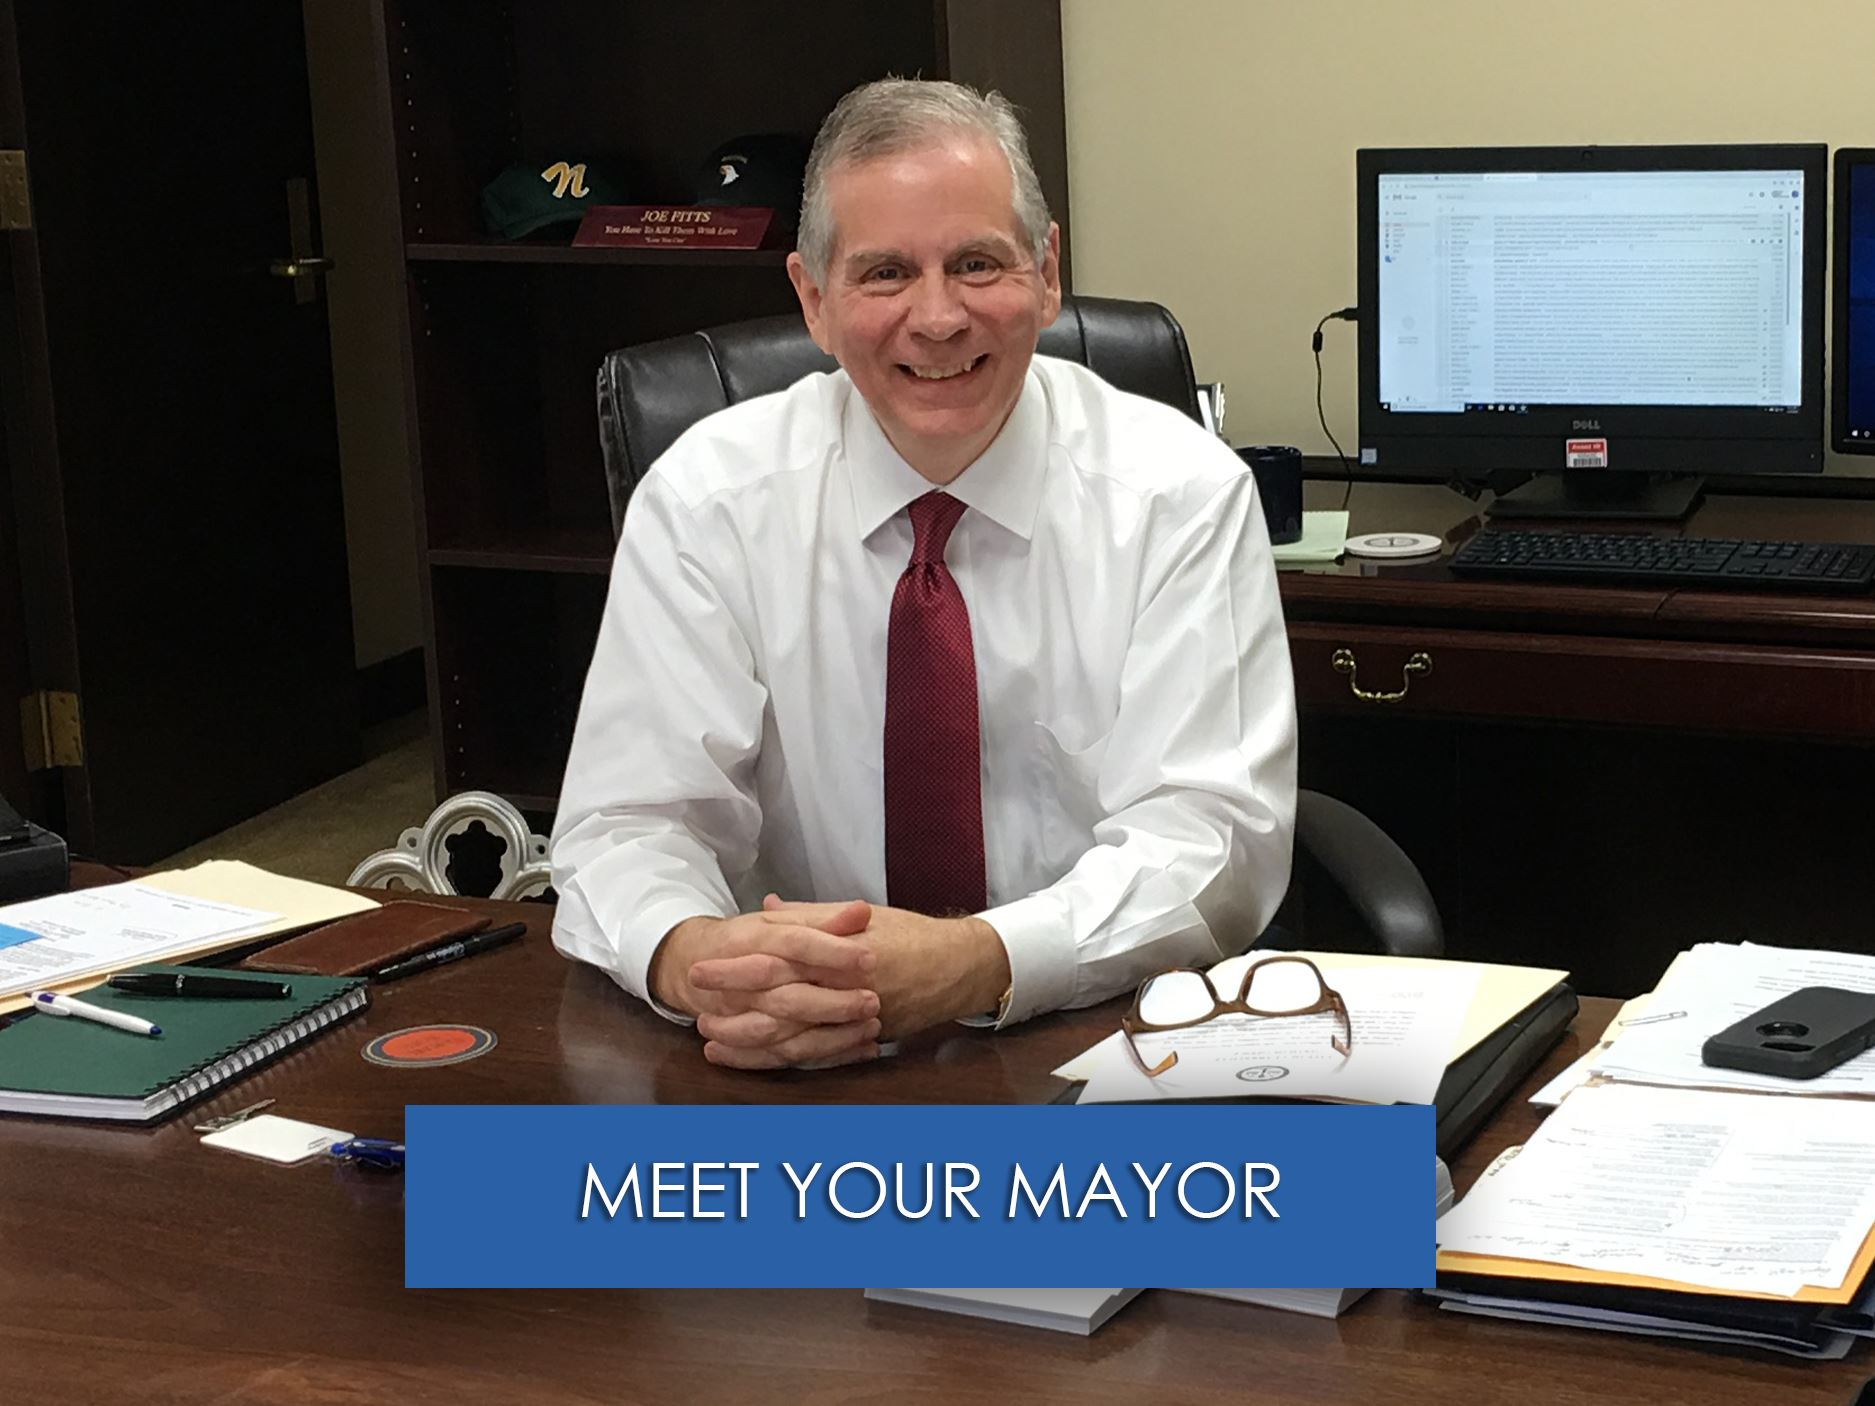 meet your mayor